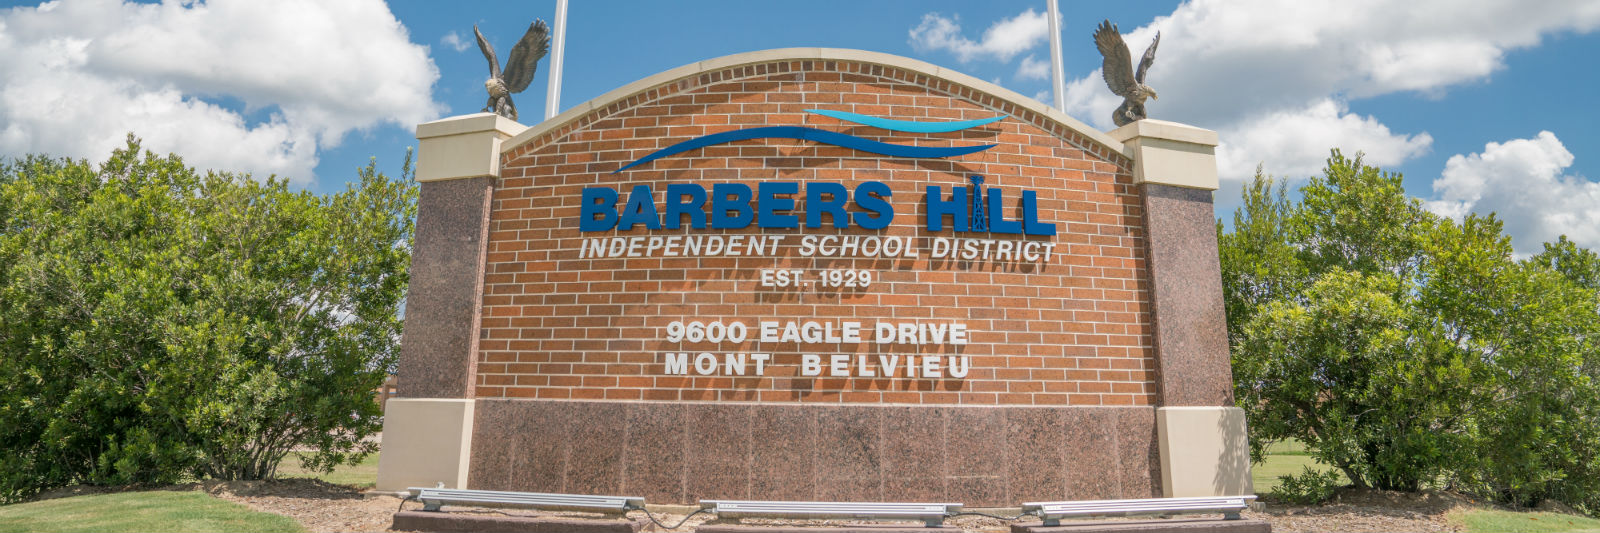 barbers-hill-school-building-entrance.jpg